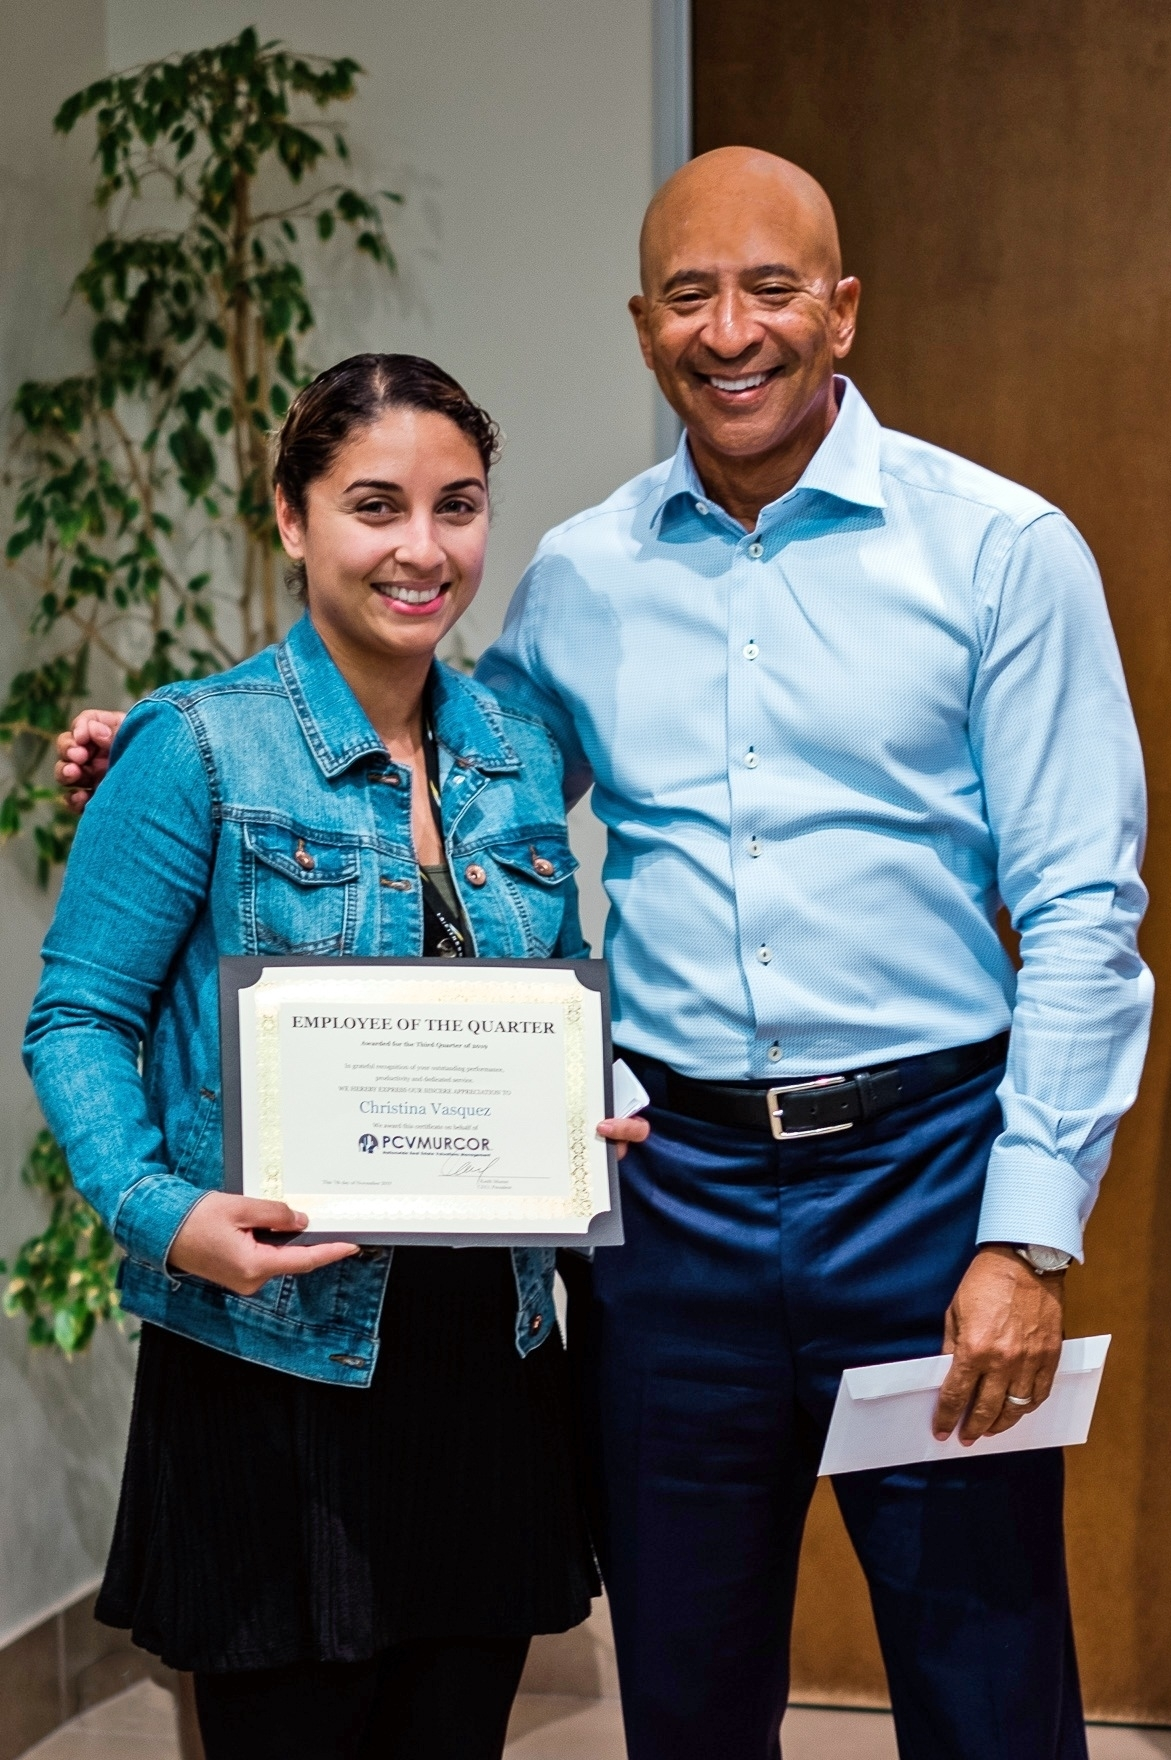 Christina Vasquez - Employee of the Quarter